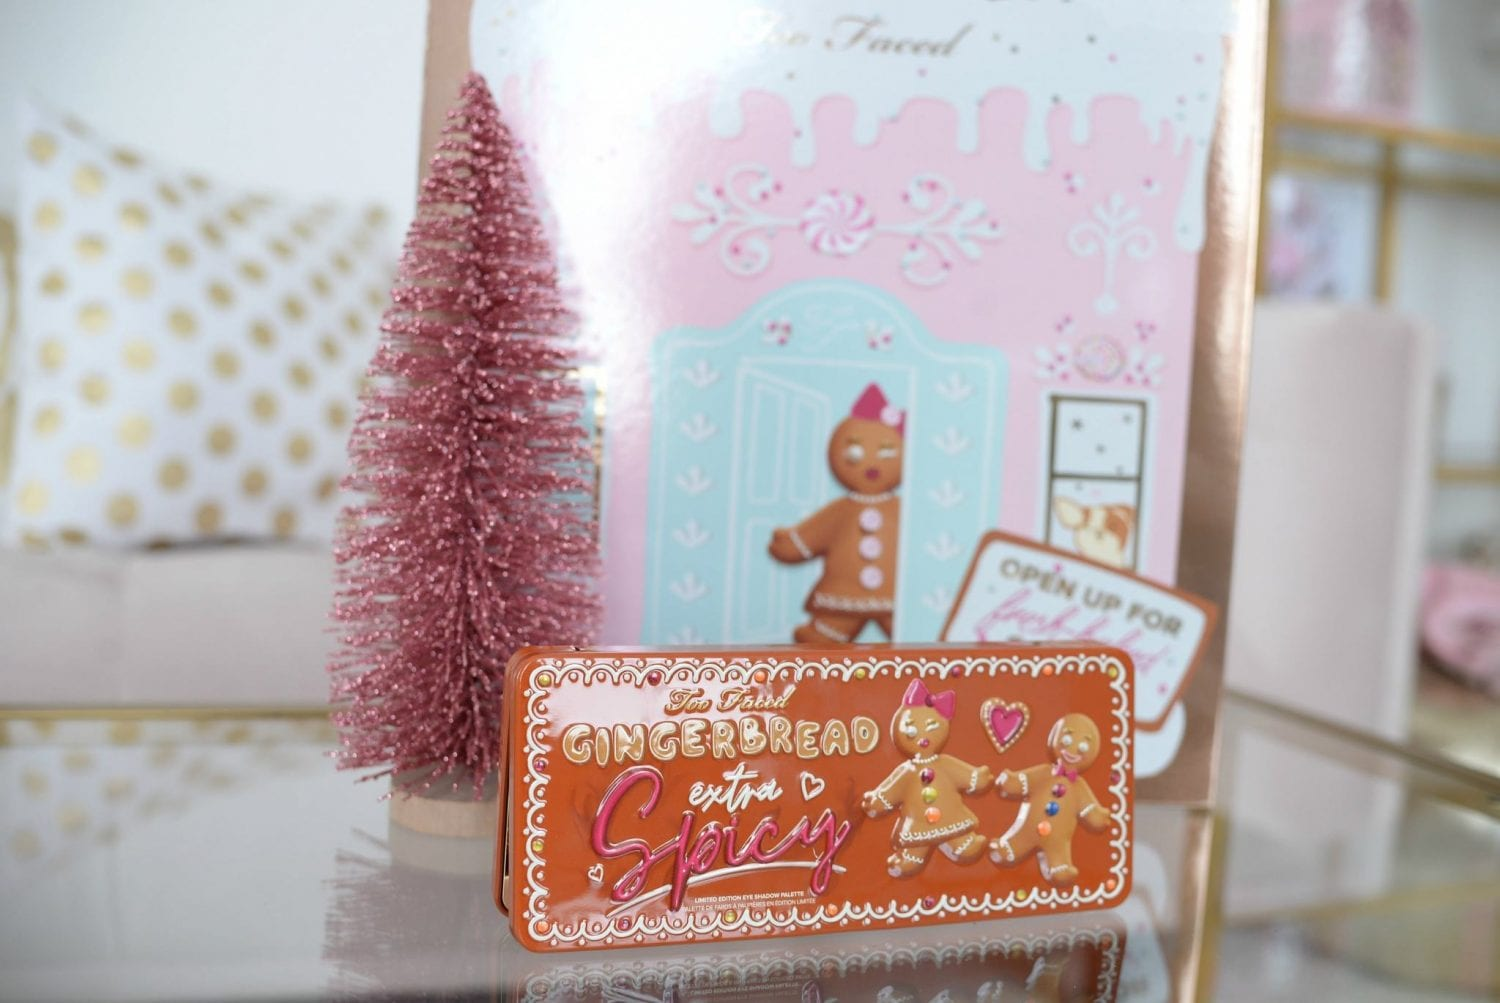 Too Faced Gingerbread Extra Spicy palette